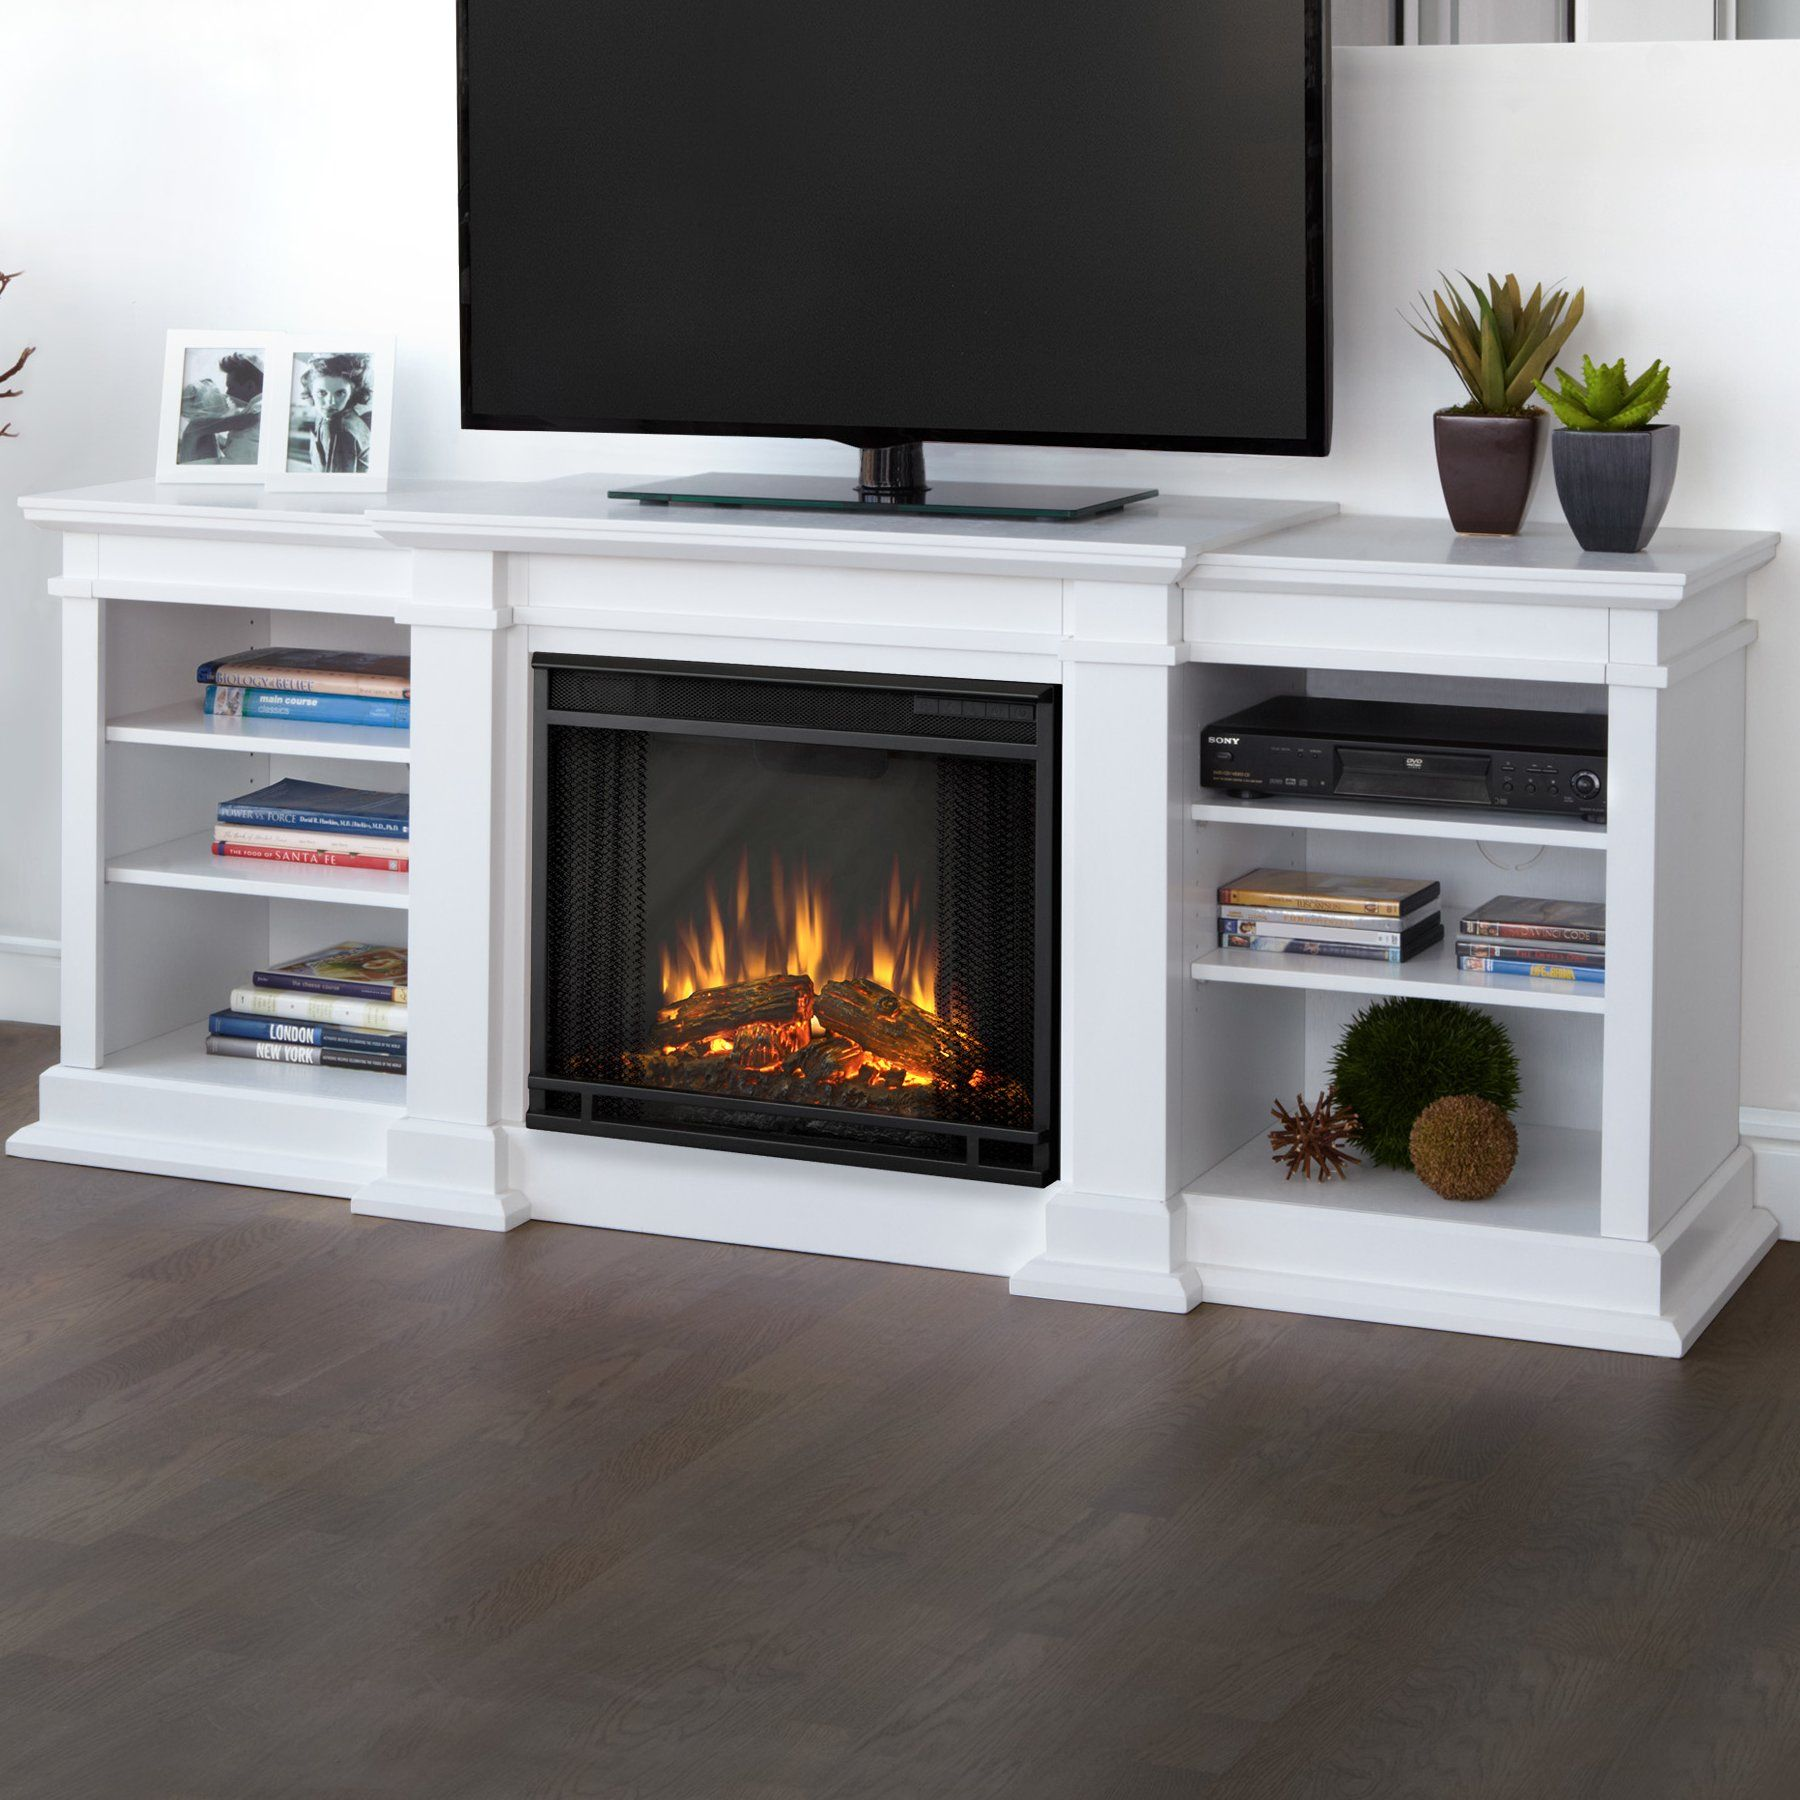 Fresno Tv Stand For Tvs Up To 78 With Electric Fireplace Included